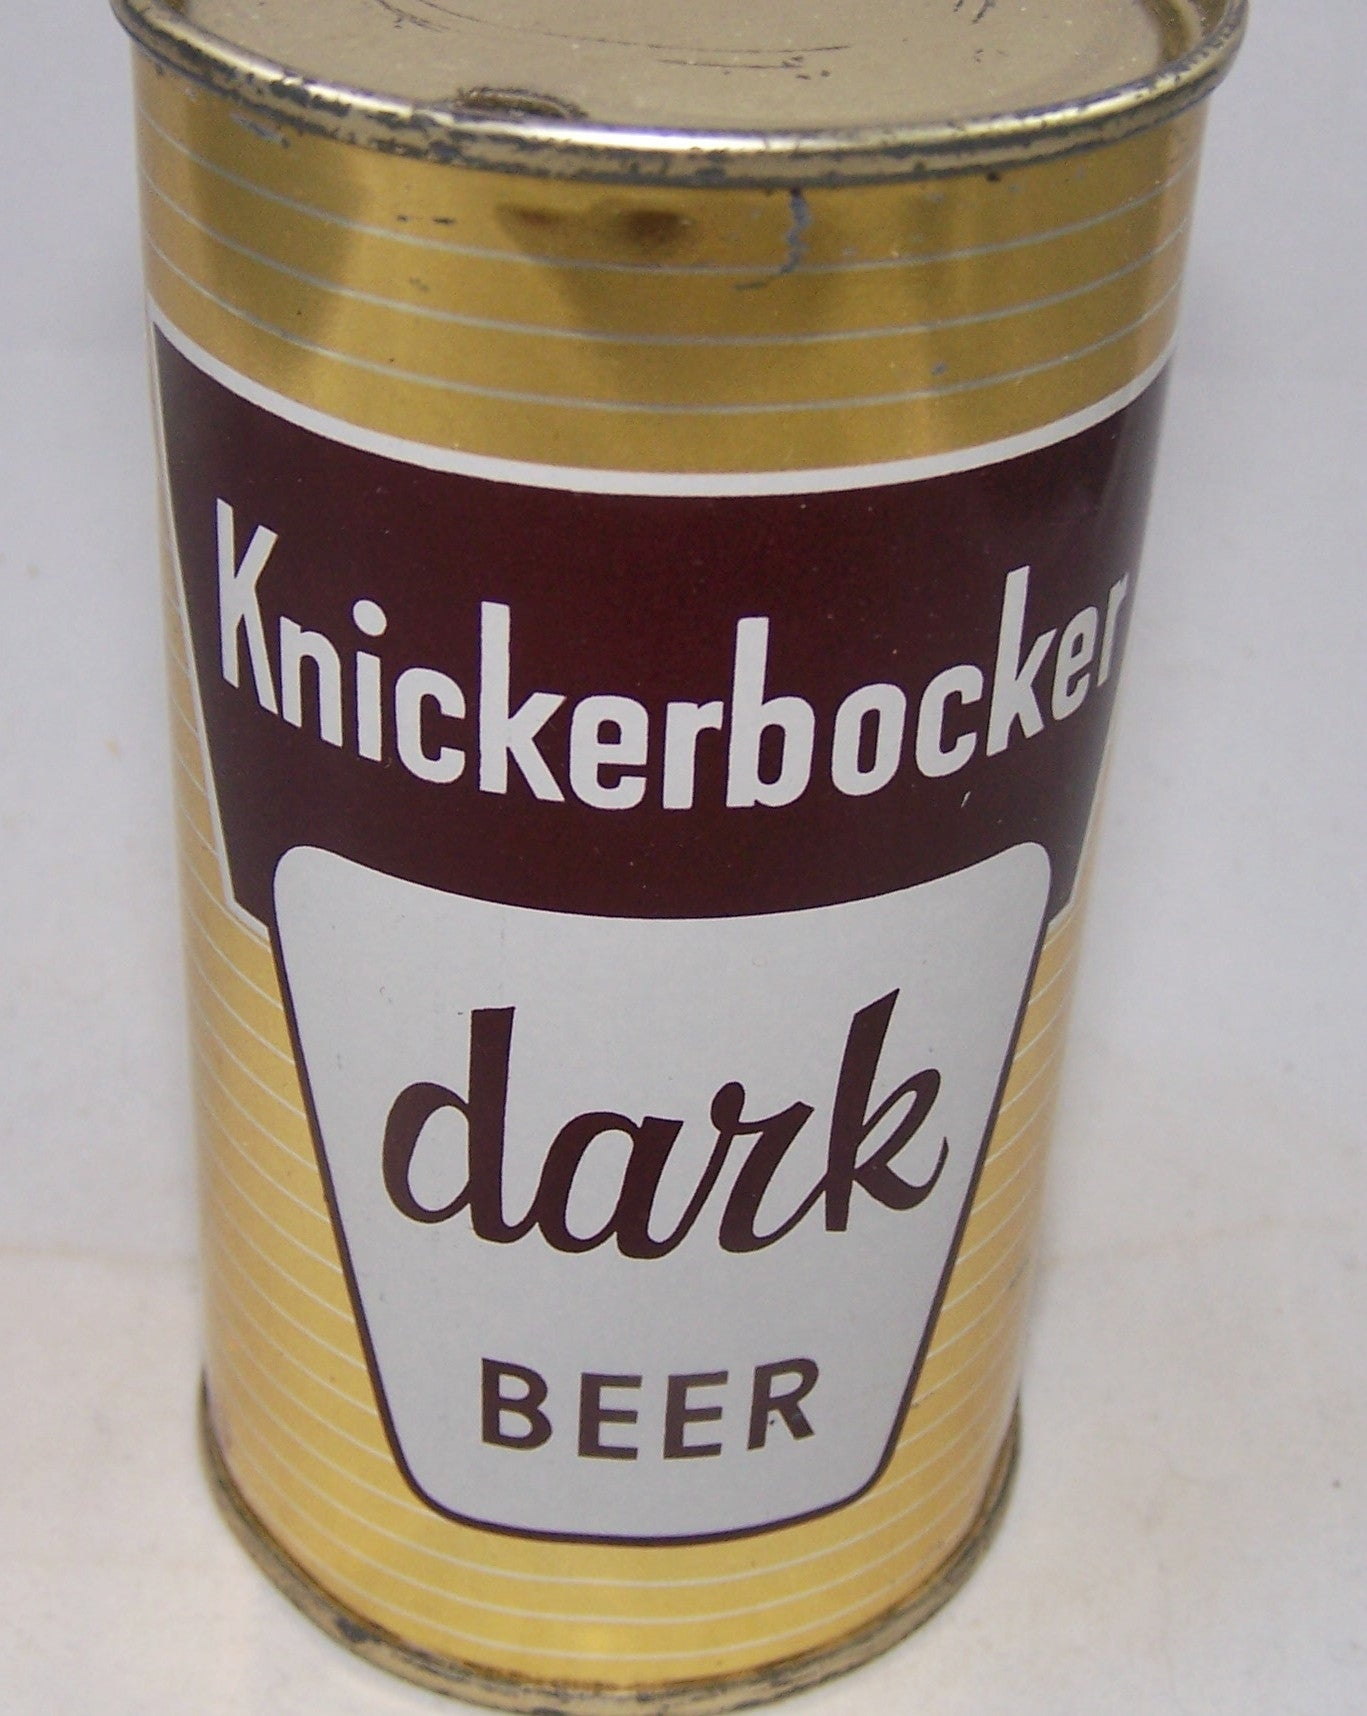 Knickerbocker Dark Beer, USBC 126-37, Grade 1/1+